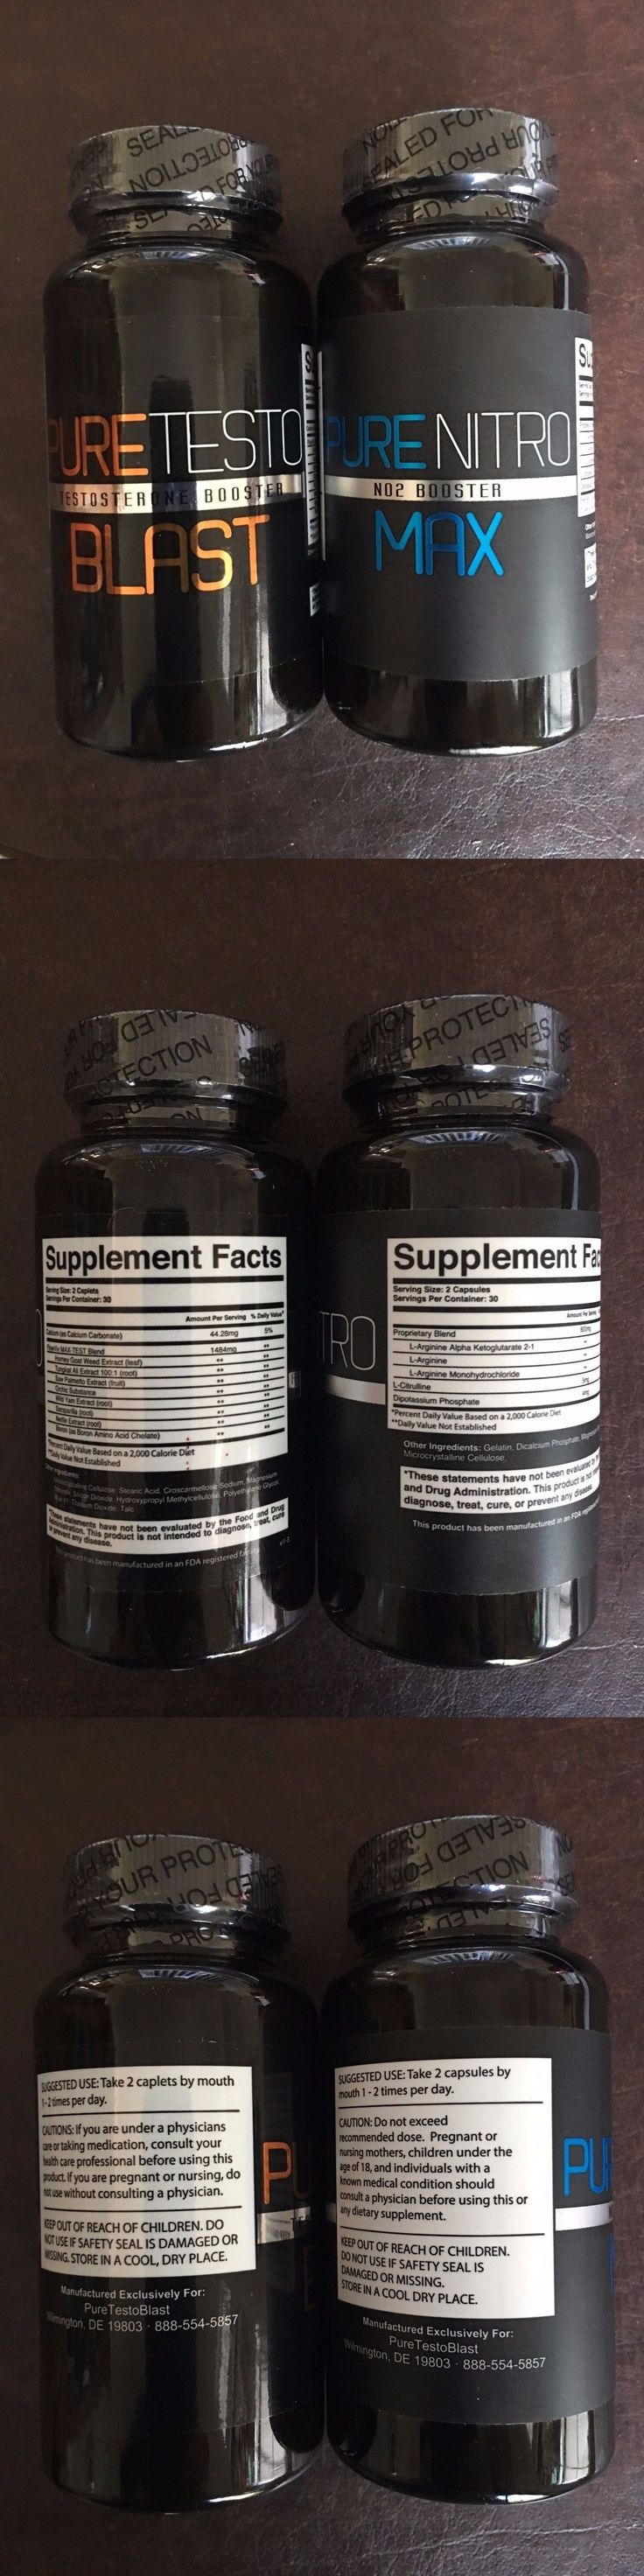 Sports Vitamins and Minerals: Pure Nitro Max No2 Booster And Testo Blast Testosterone Booster - Exp 03 2020 -New -> BUY IT NOW ONLY: $69.99 on eBay!